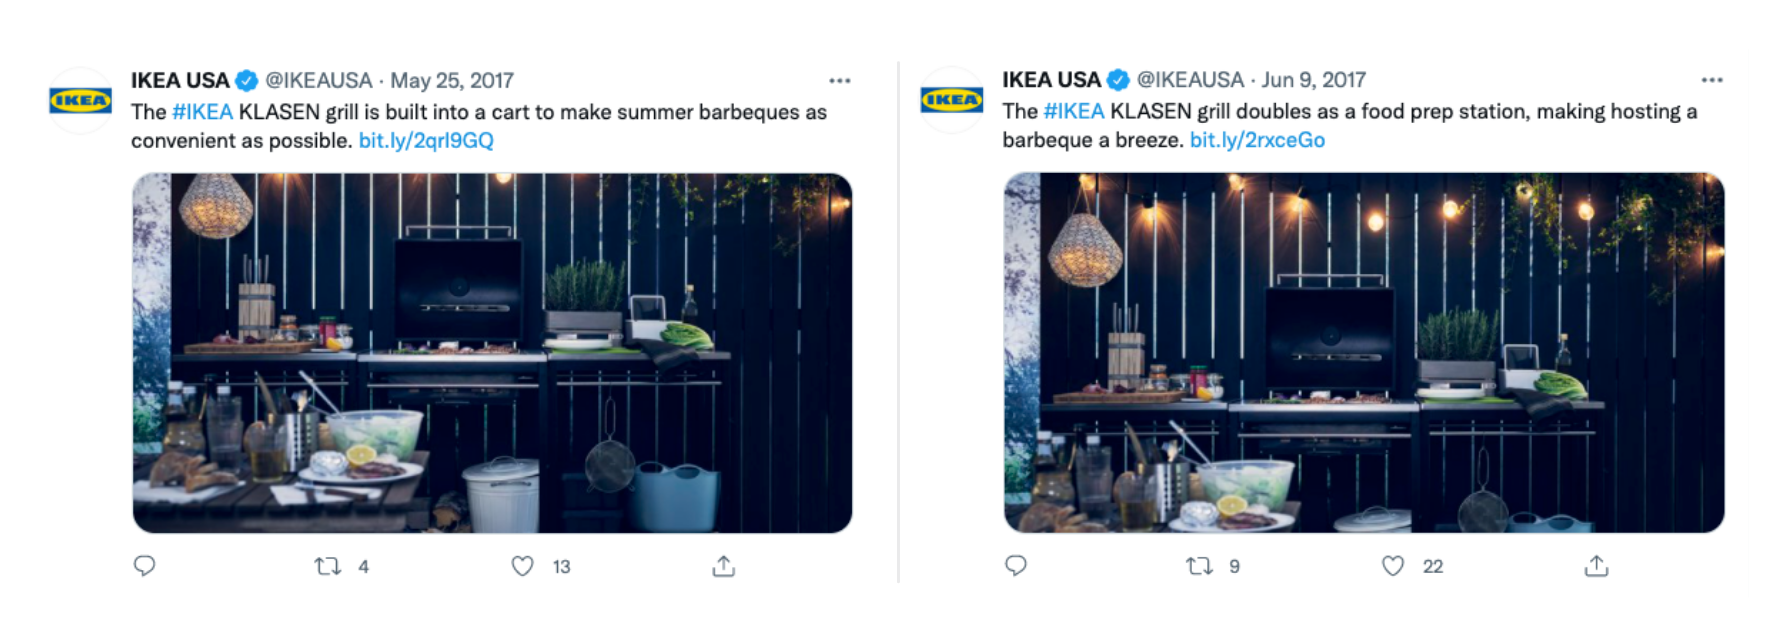 A side-by-side comparison of two similar Ikea USA posts with different captions.